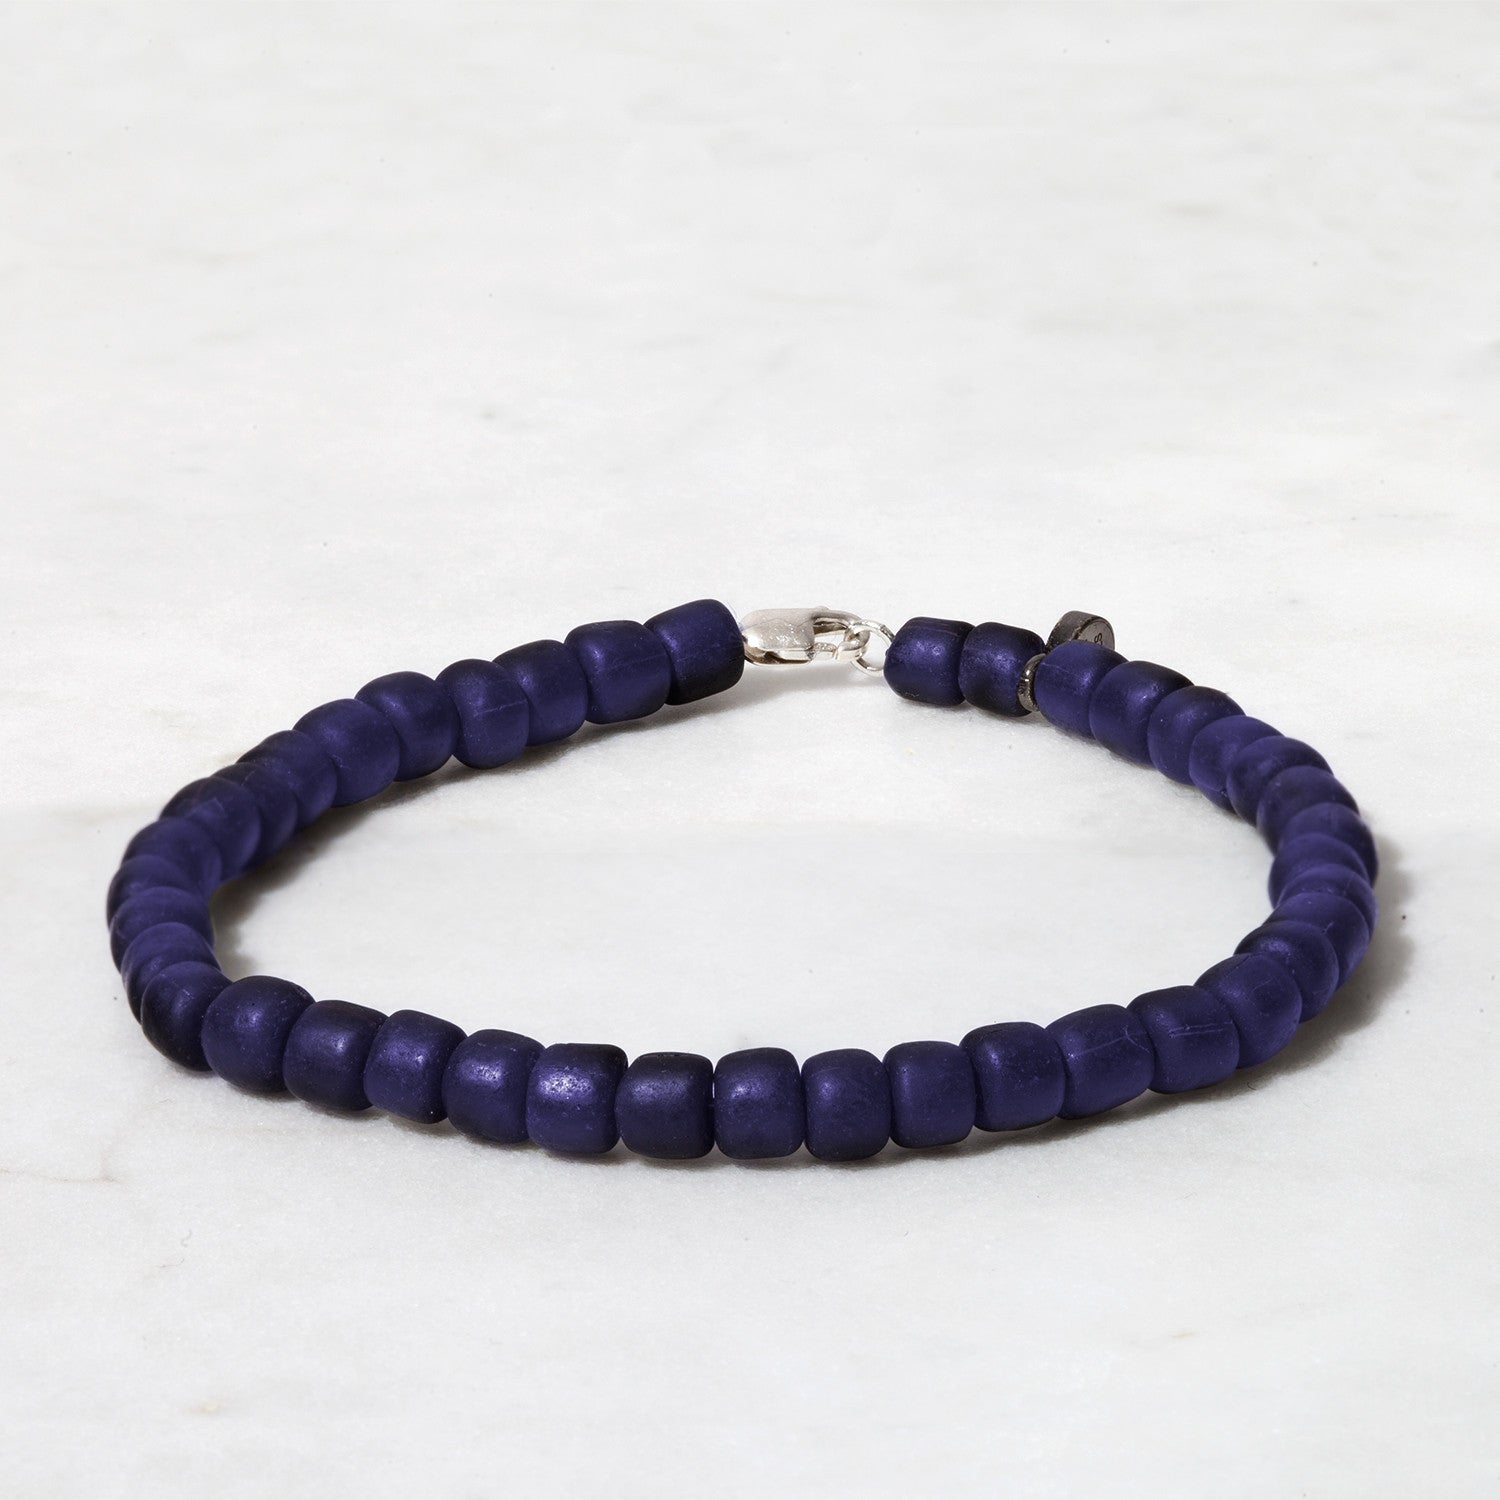 style navy for from item weave jewelry strand genuine women accessories niuyitid multilayer in bracelet anchor men leather bracelets charm